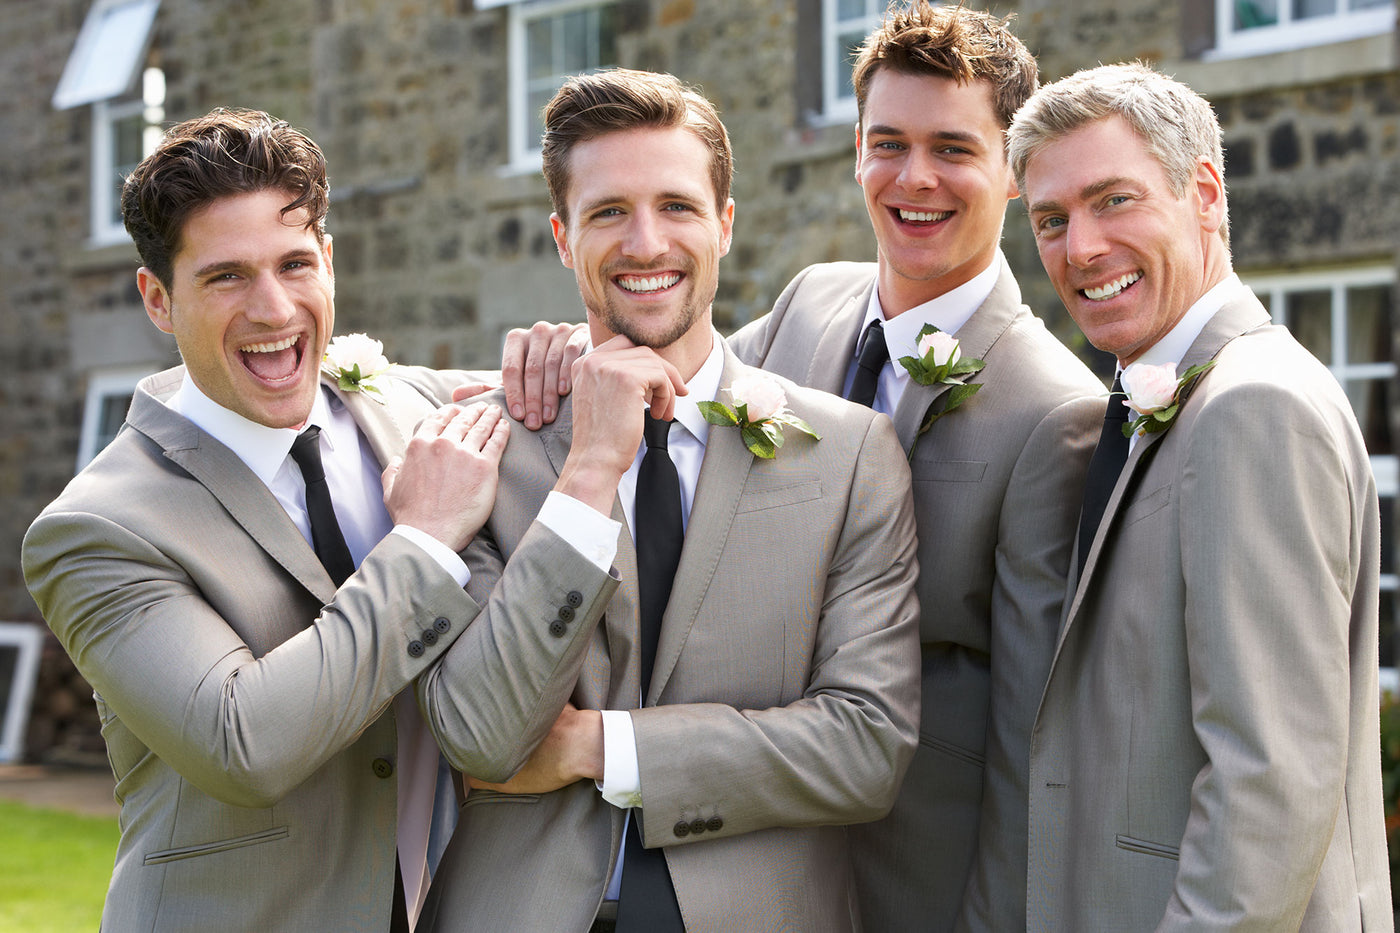 The groom and groomsmen in matching motif satin ties